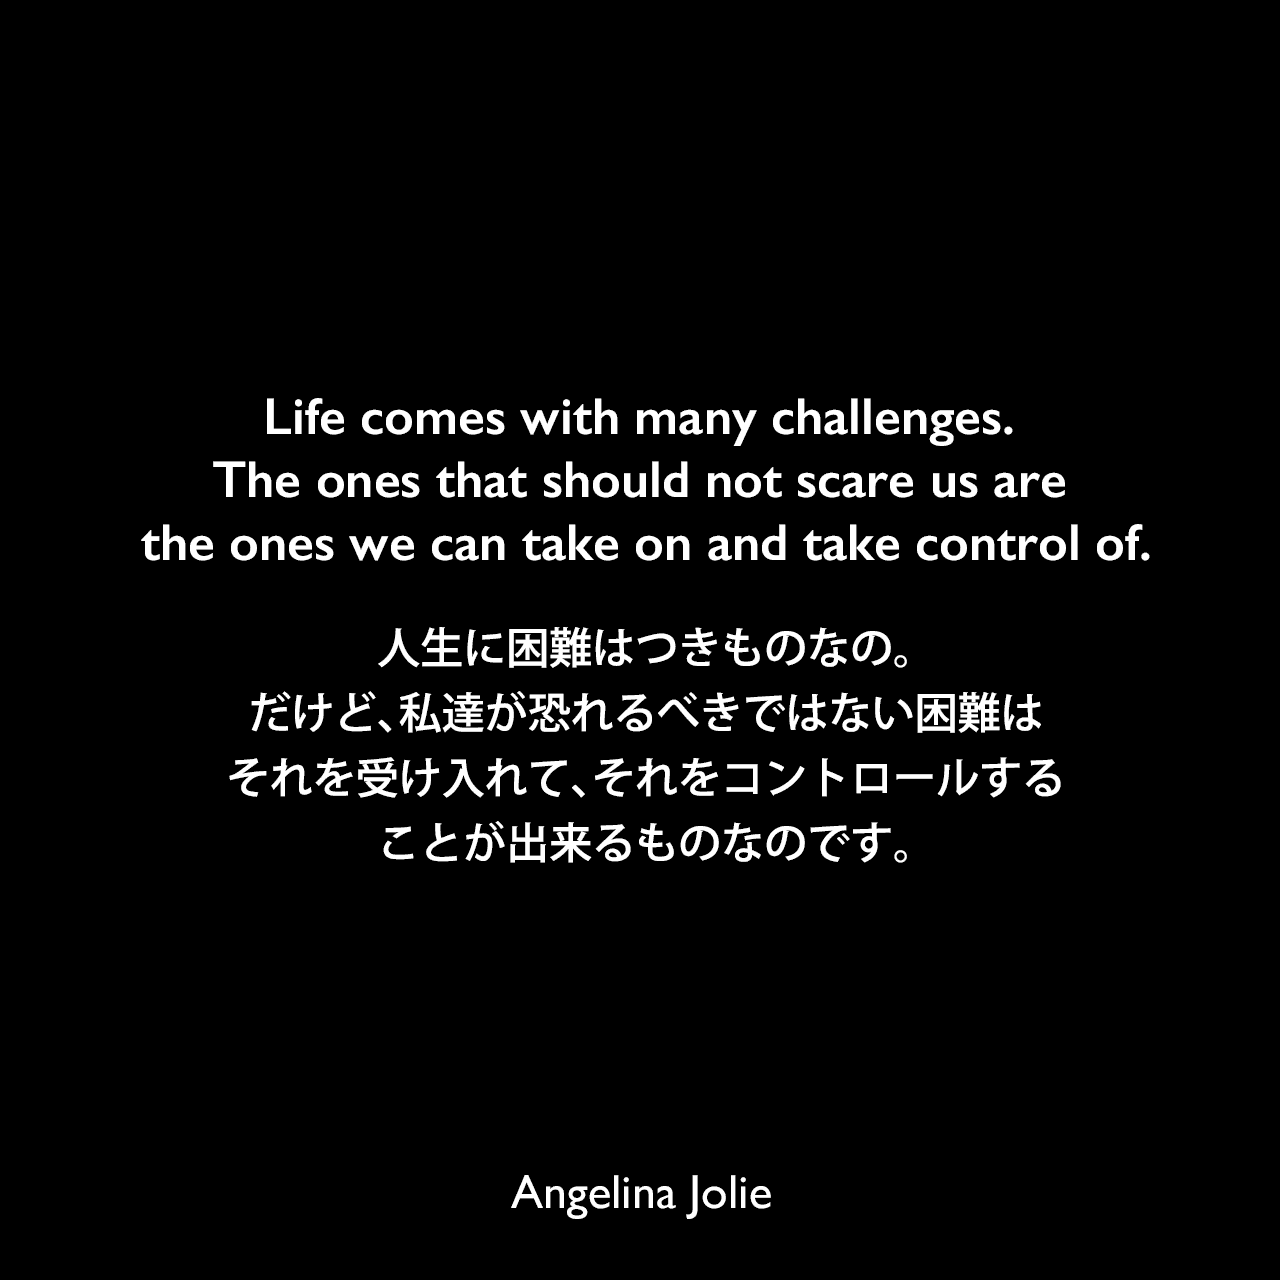 Life comes with many challenges. The ones that should not scare us are the ones we can take on and take control of.人生に困難はつきものなの。だけど、私達が恐れるべきではない困難は、それを受け入れて、それをコントロールすることが出来るものなのです。Angelina Jolie